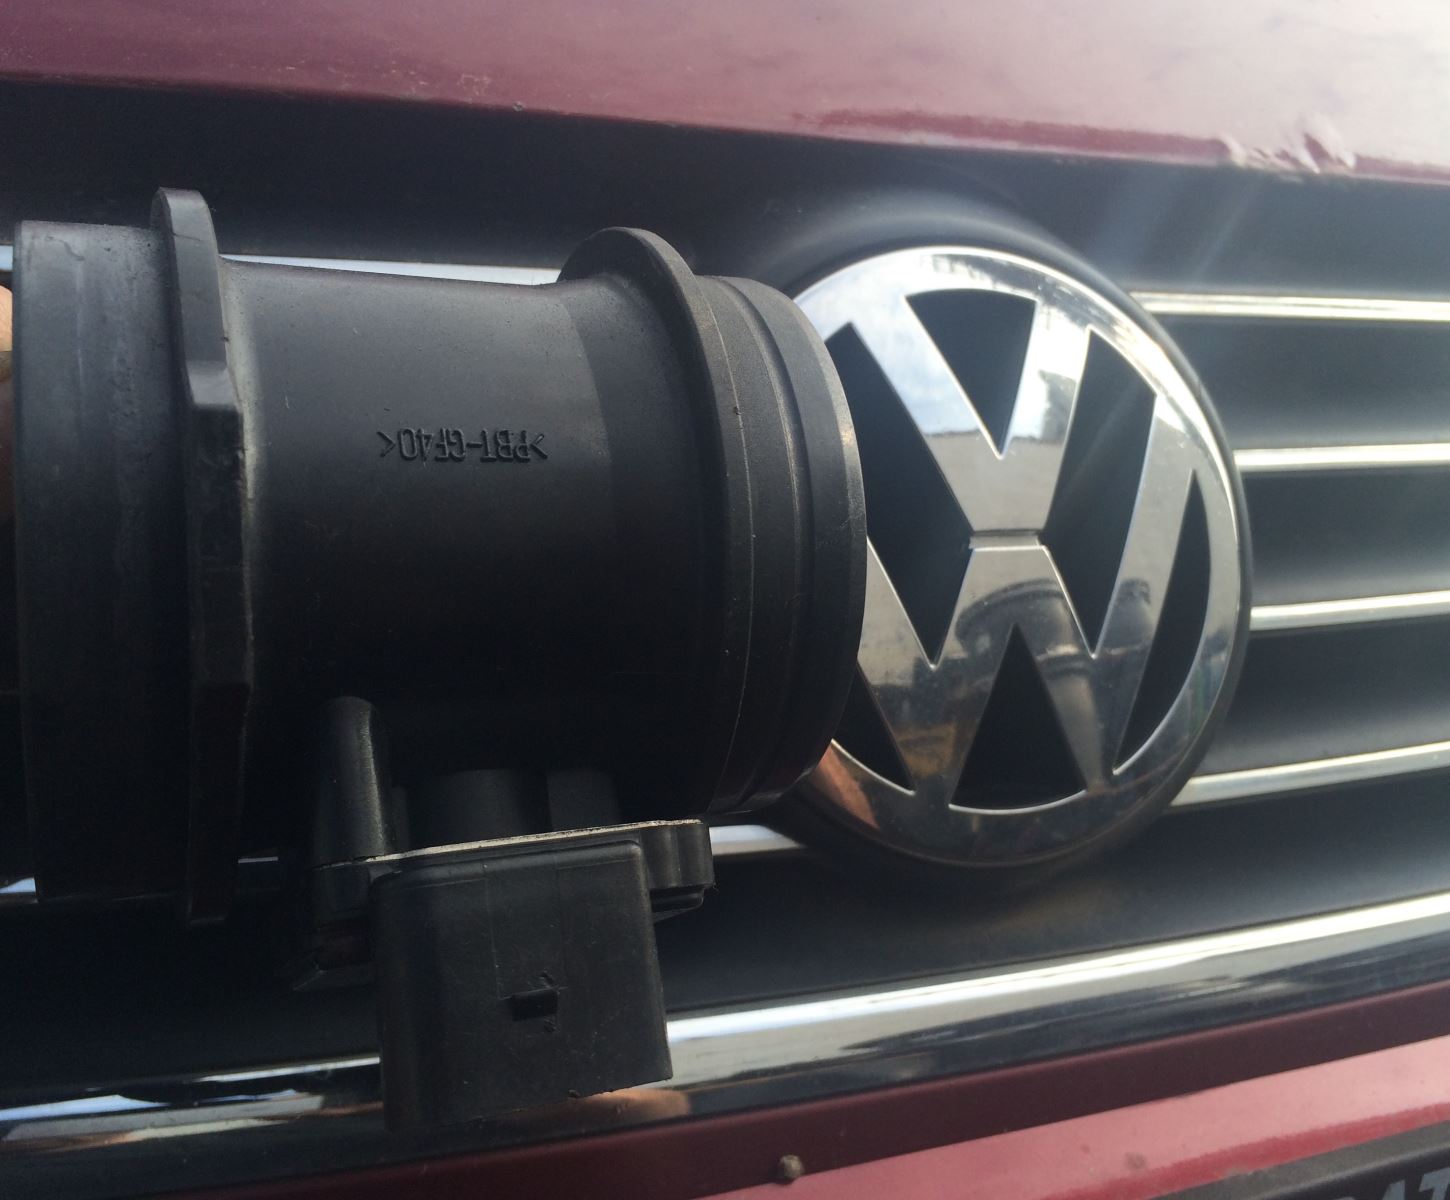 VW MASS AIR FLOW SENSORS EXPLAINED